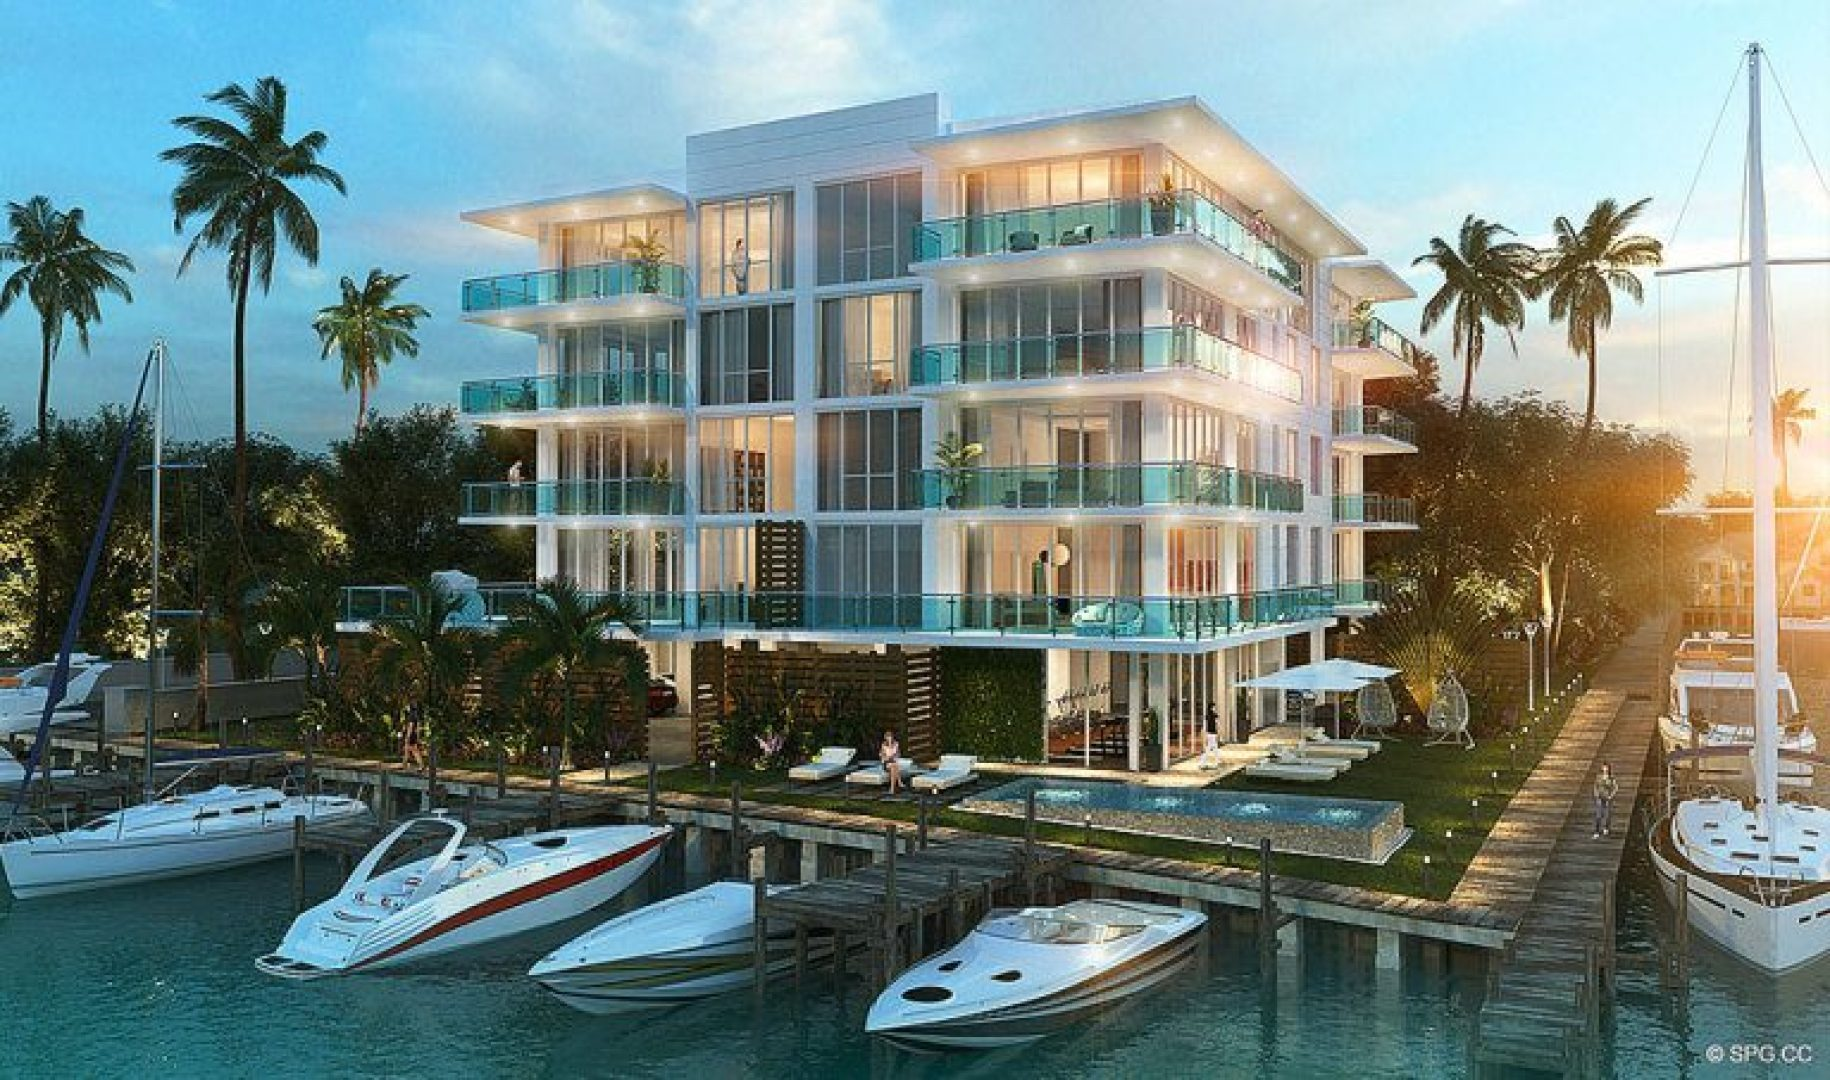 33 Intracoastal, Luxury Waterfront Condos in Fort Lauderdale